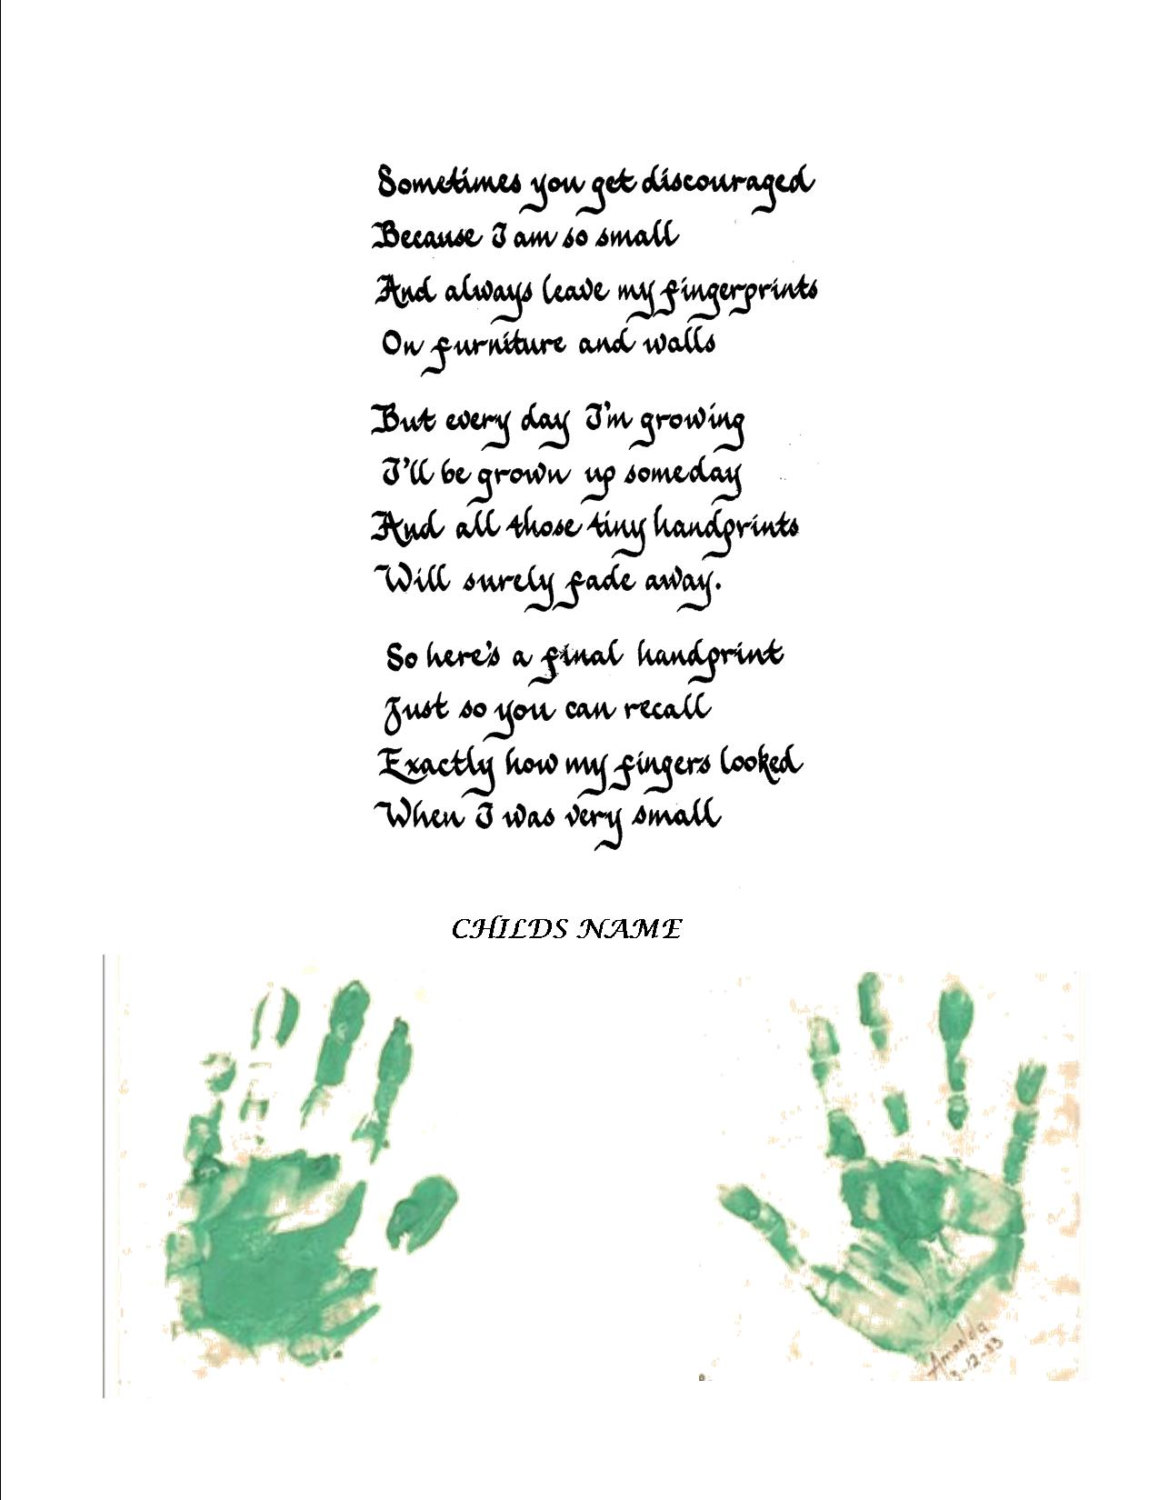 photograph relating to Sometimes You Get Discouraged Handprint Poem Printable titled Handprint Poems